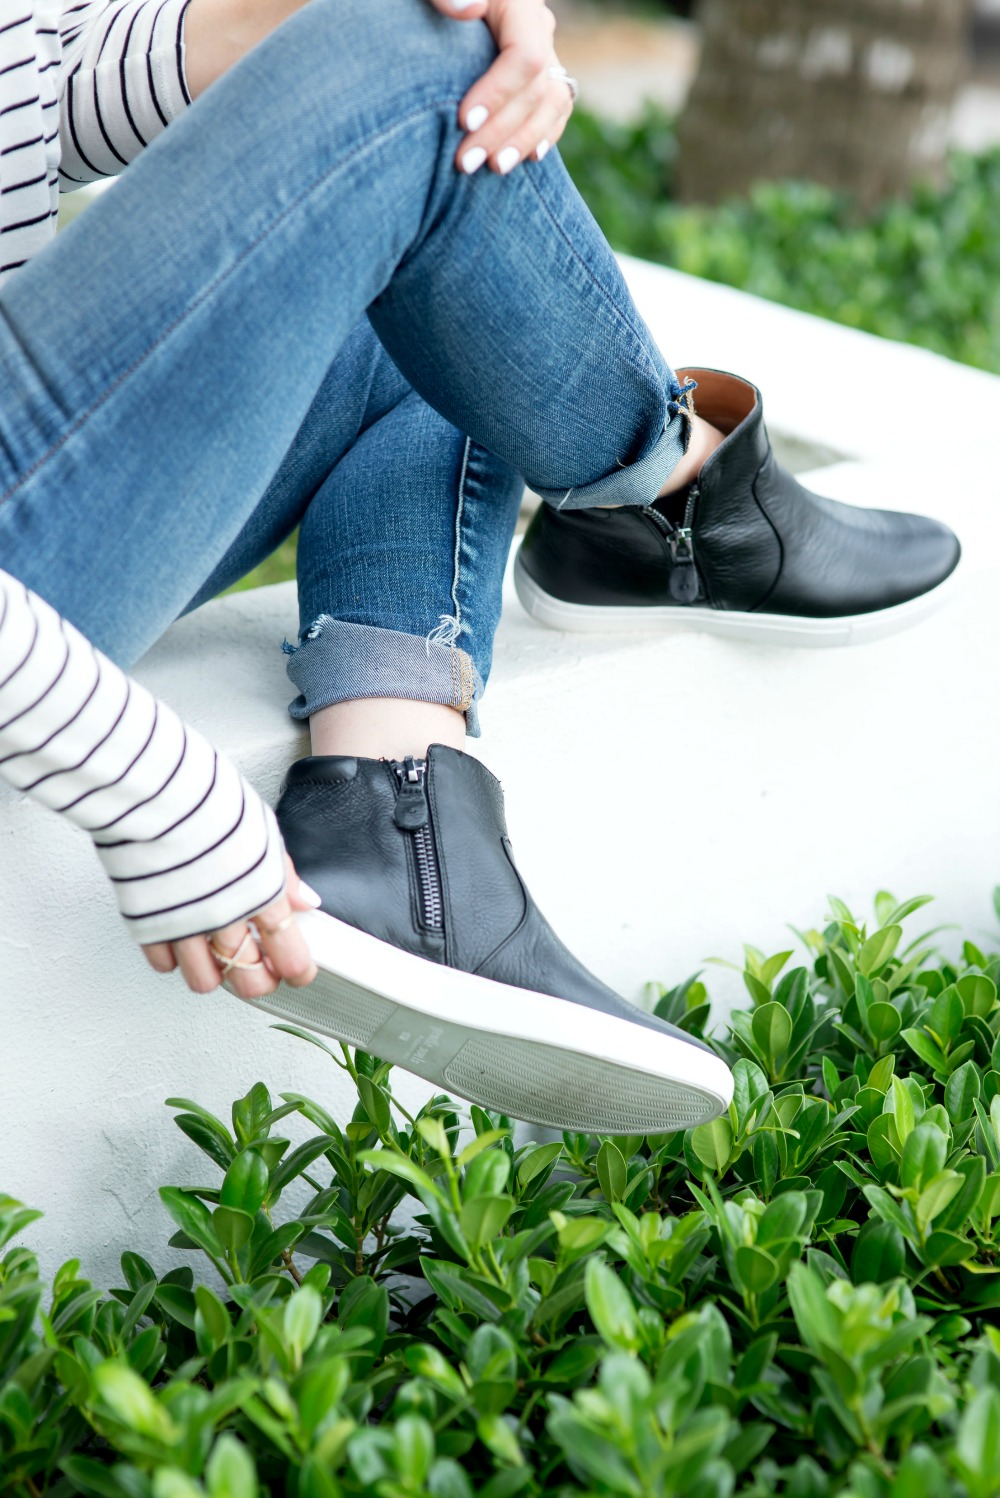 Update your sneaks game with a pair of chic black high tops // the modern savvy, a life & style blog based in florida